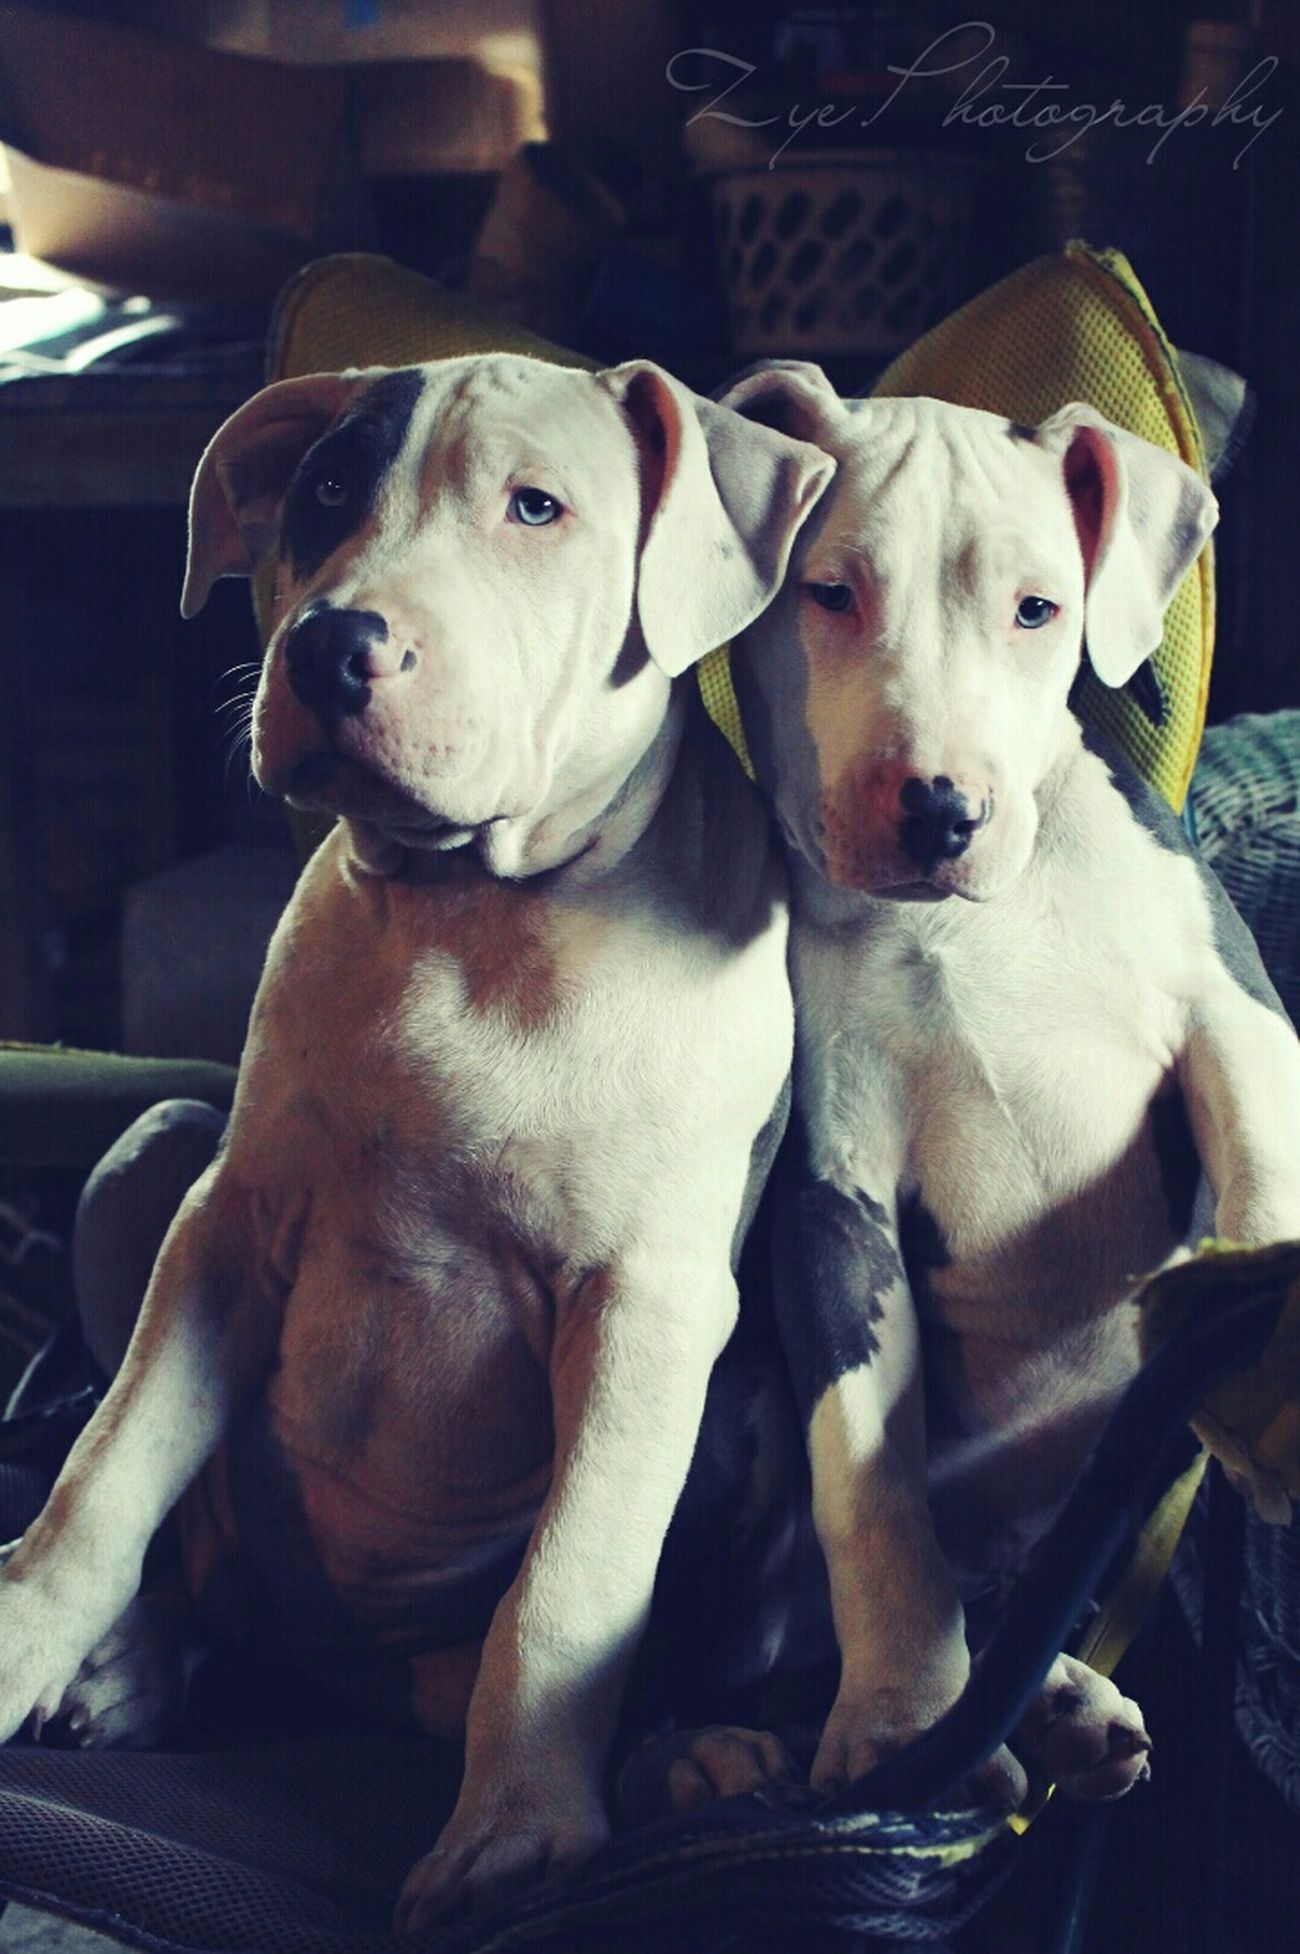 Brother Hood ZyePhotography Pitbullsofinstagram Pitbulls Pitbull♥ Brothers Pitbullpuppies Harlingen Tx Ilovemydogs Canonrebelt3 Taking Photos